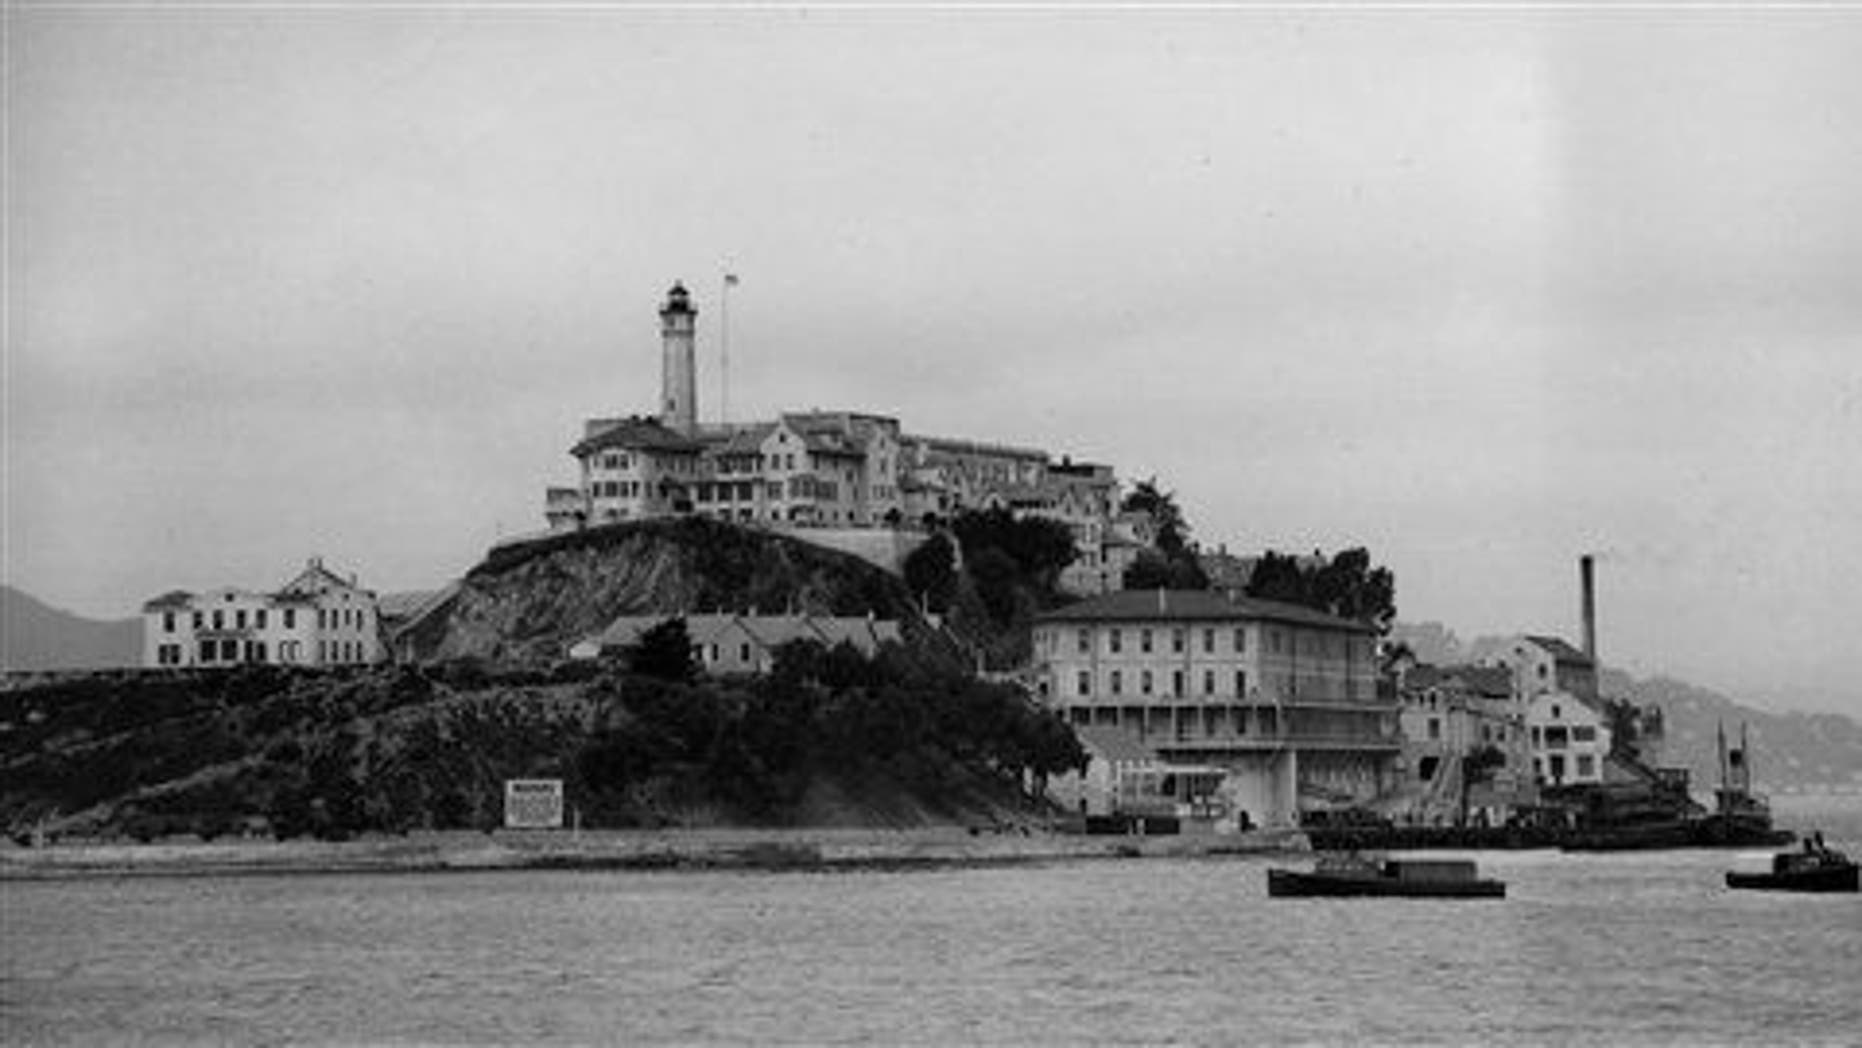 Three armored railroad cars arrive on a car ferry at the United States Penitentiary on Alcatraz Island, San Francisco in August 1934.